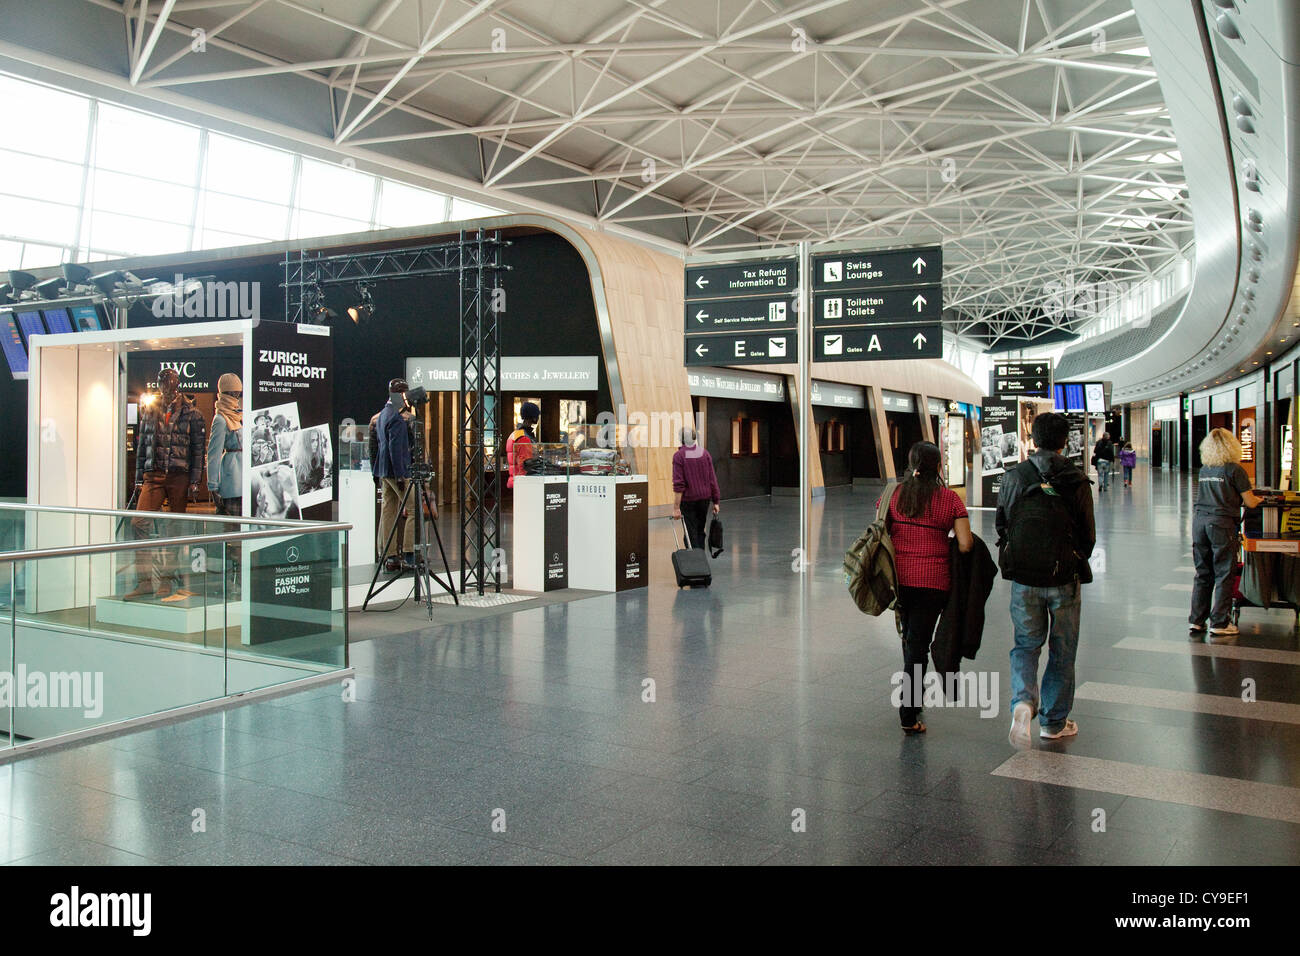 The inerior of the departure lounge, Zurich airport, Switzerland Europe - Stock Image